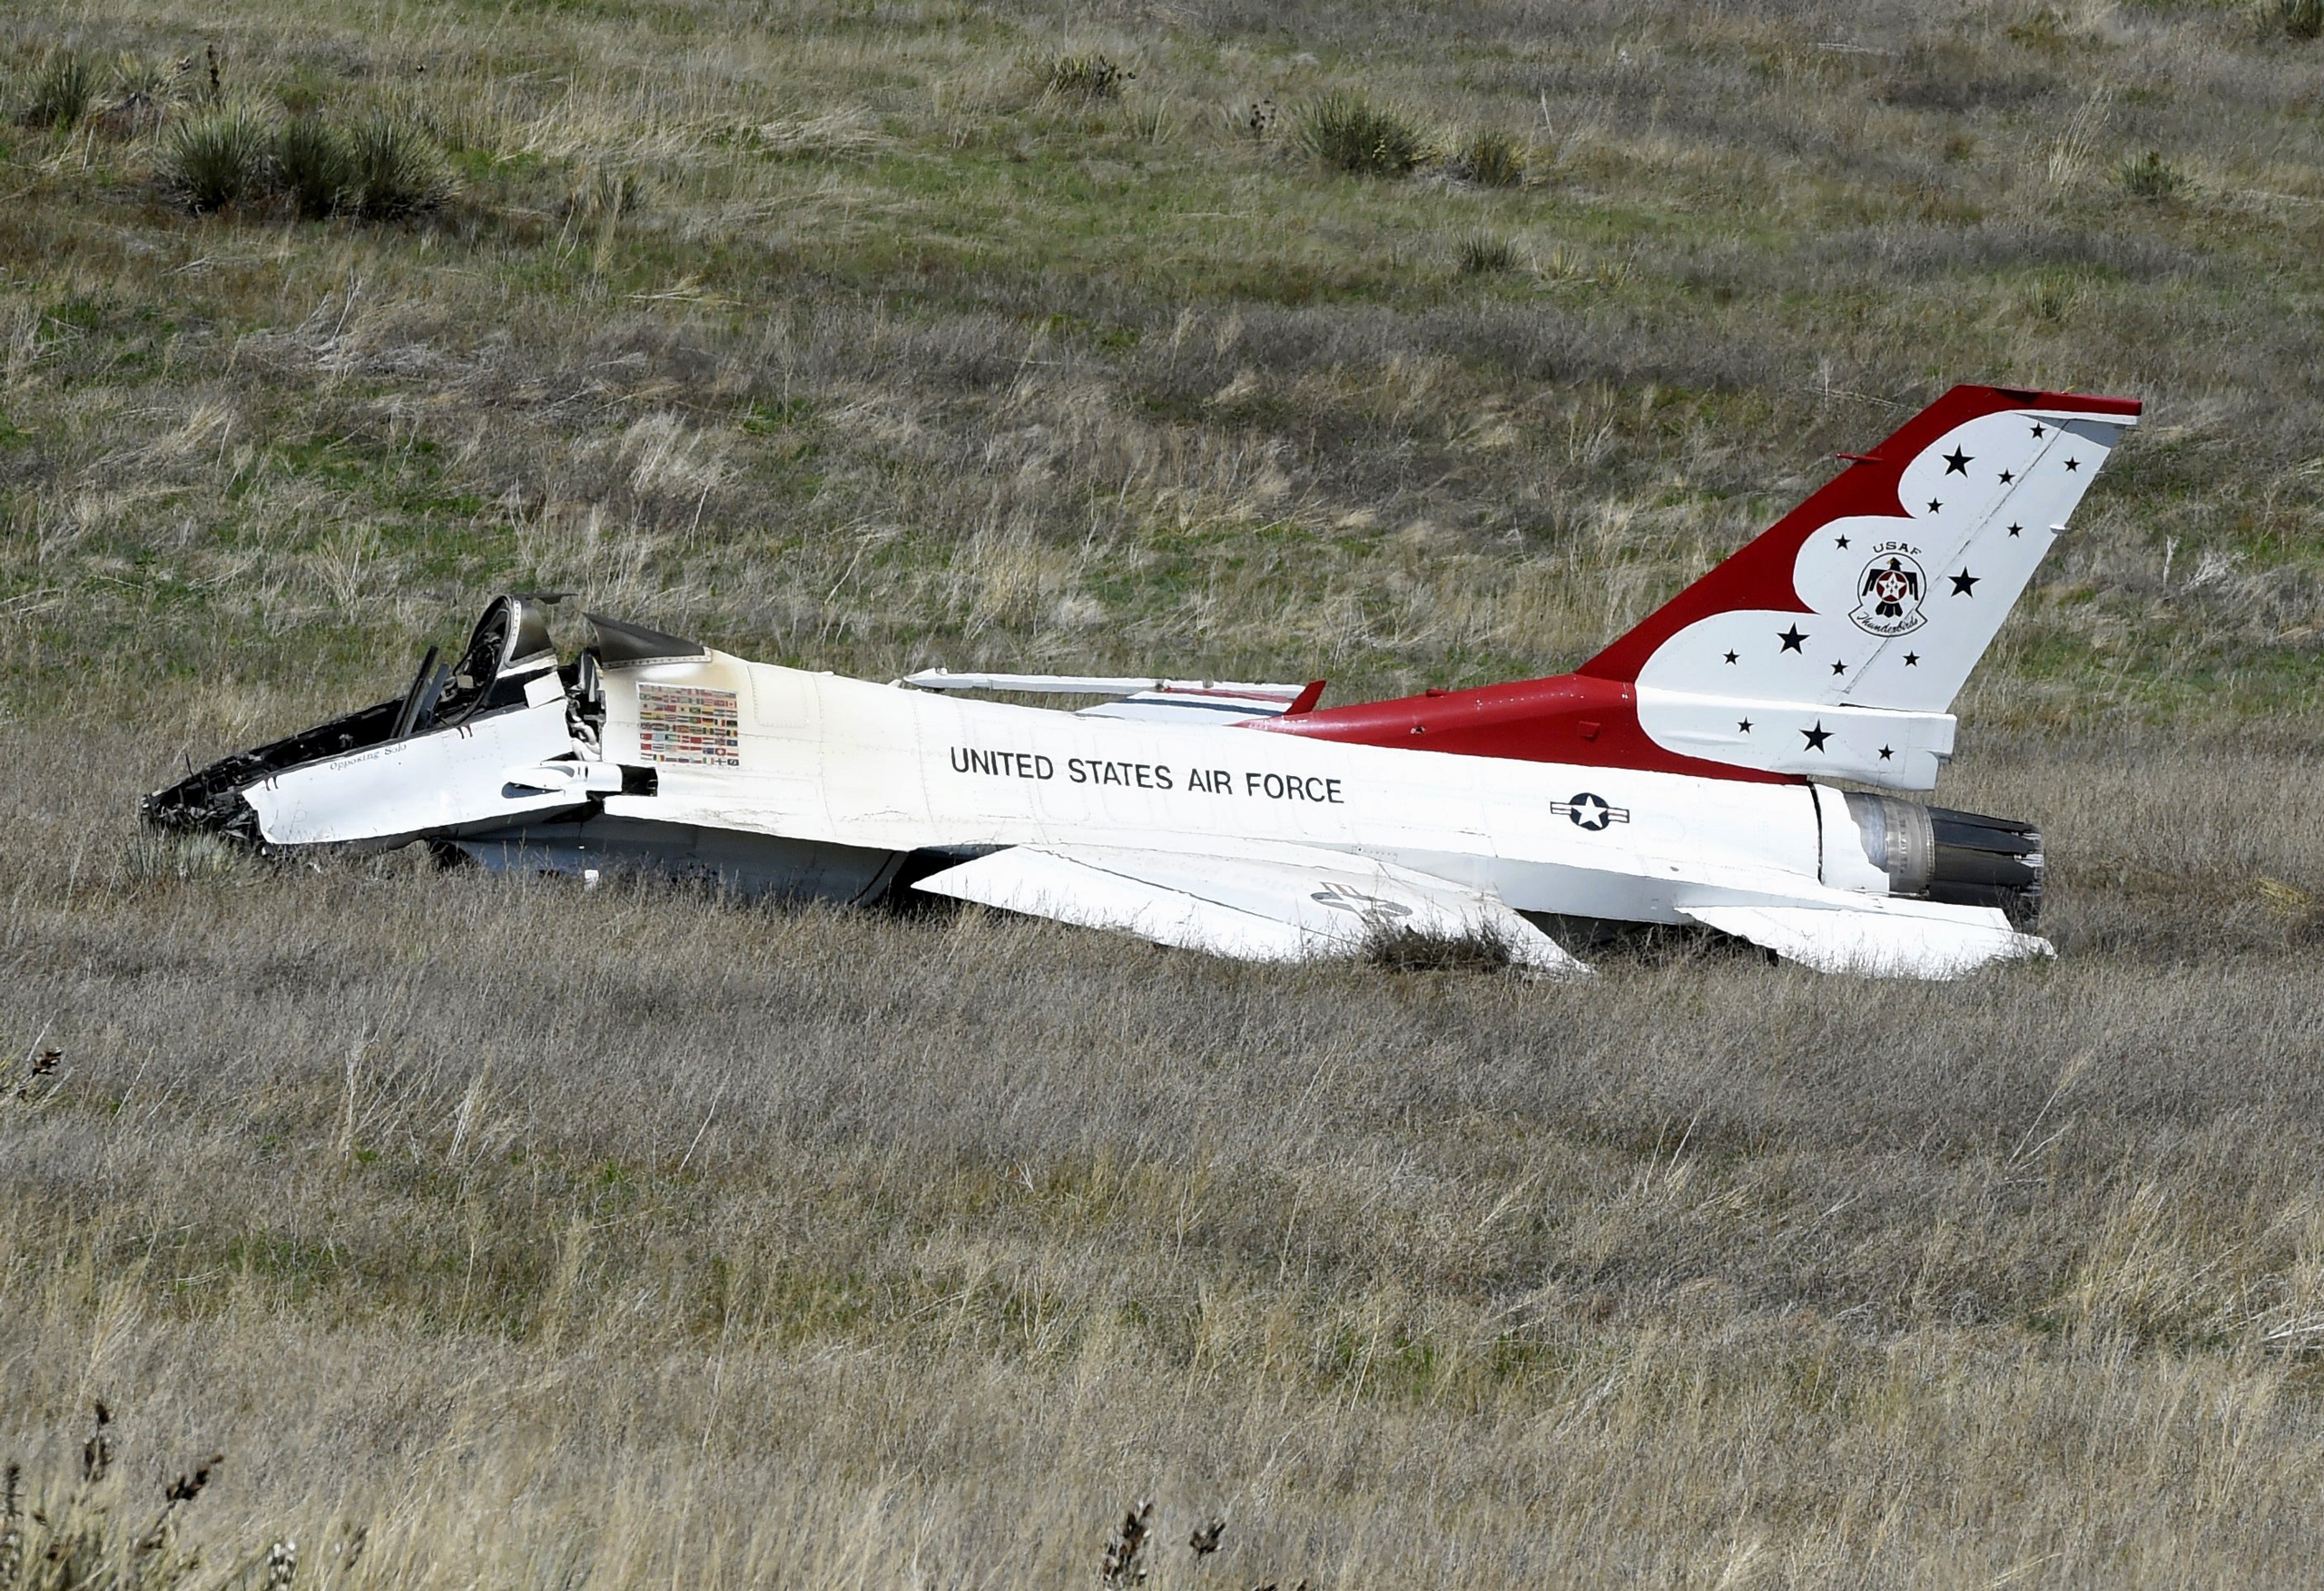 A U.S. Air Force Thunderbird that crashed following a flyover a performance at a commencement for Air Force Academy cadets in Colorado Springs, Colo., on June 2, 2016. The pilot ejected safely from the jet.